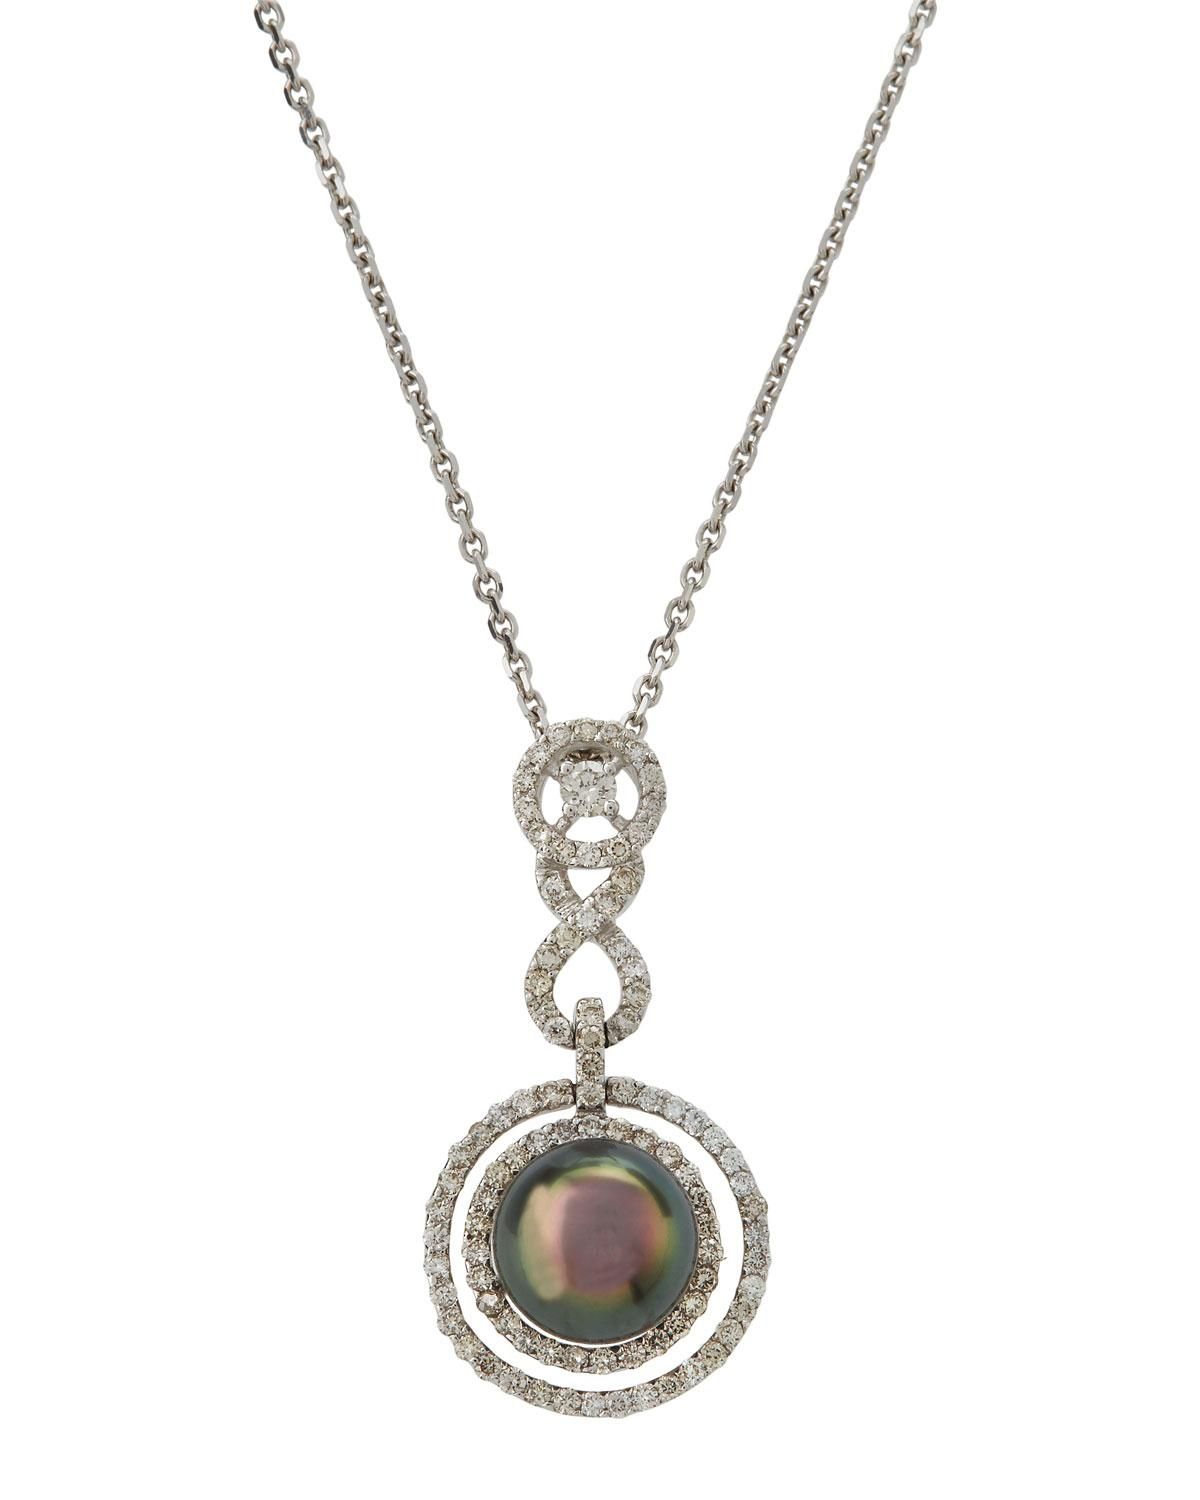 Belpearl 14k White Gold Geometric Pave & Pearl Pendant Necklace